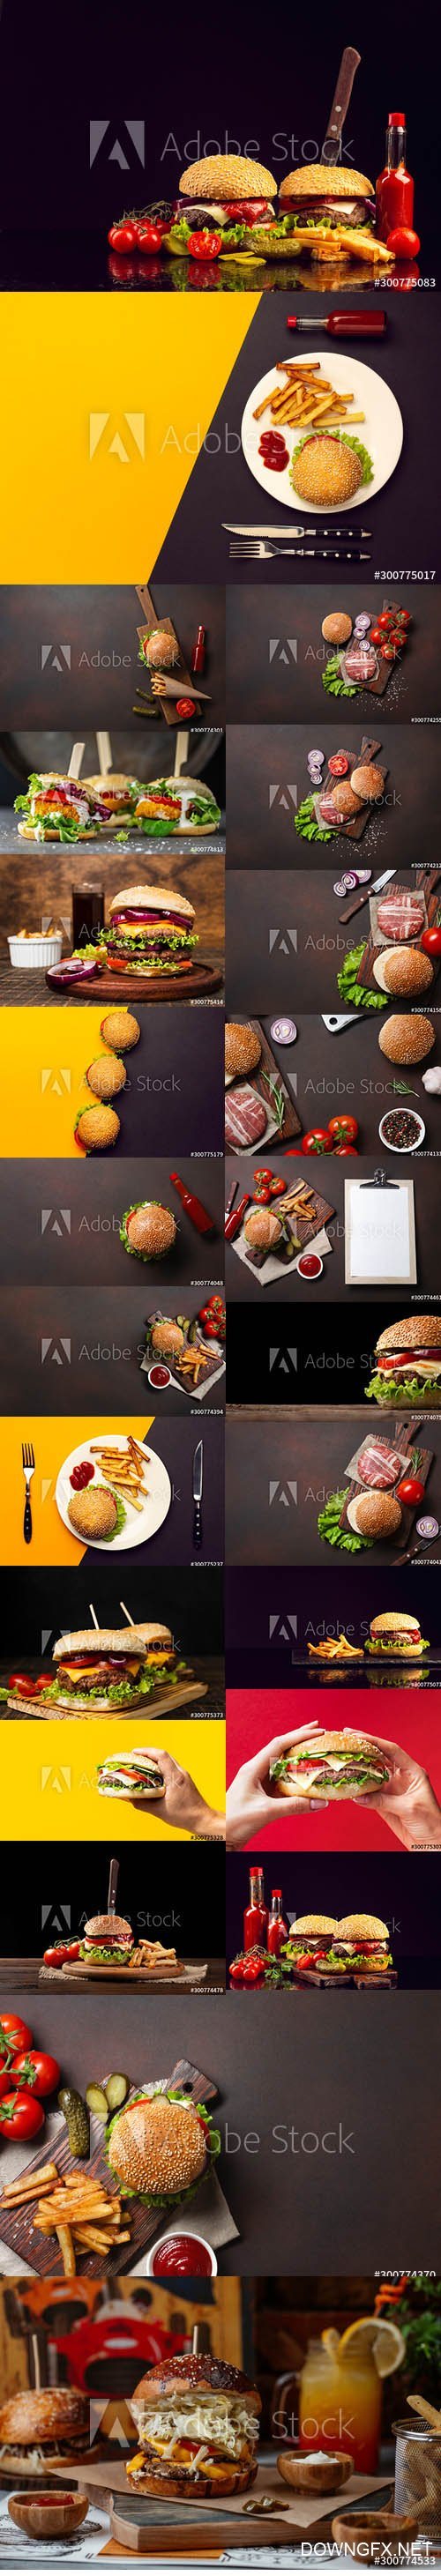 Hamburger Backgrounds Stock Images Set